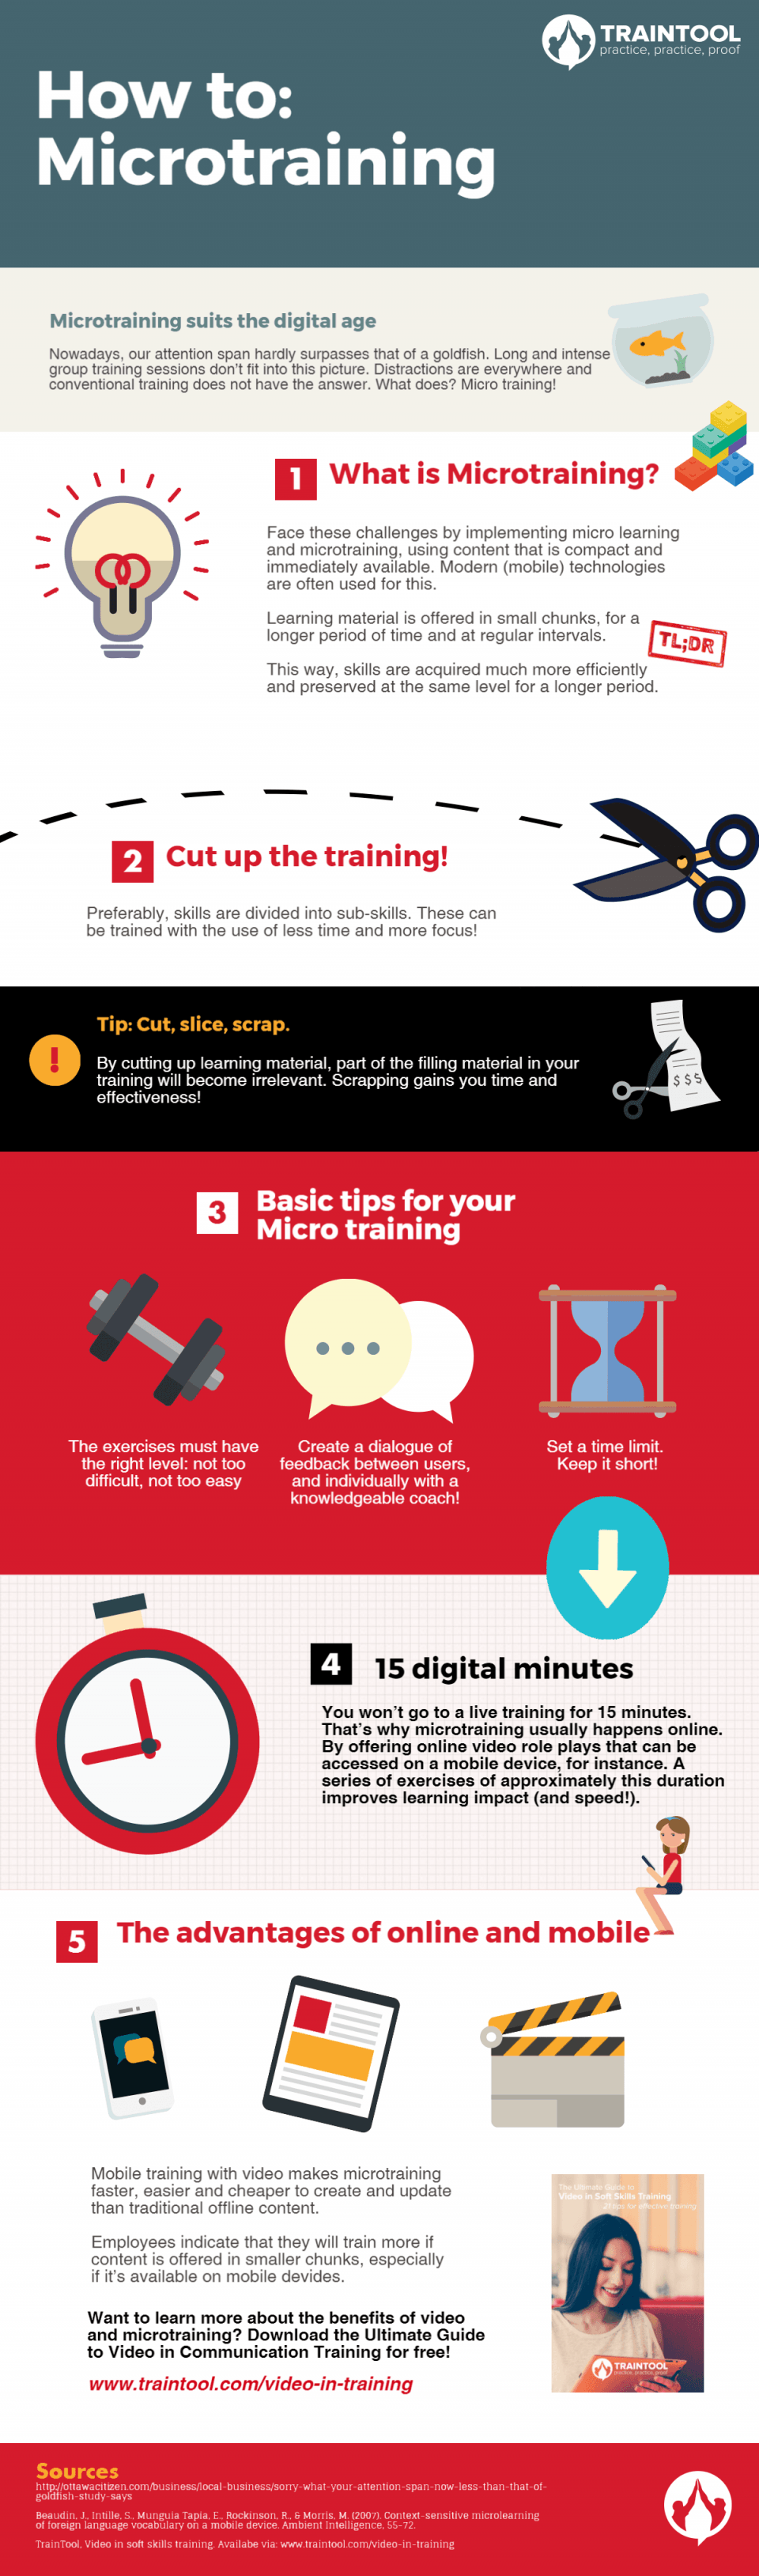 Microtraining & How To Do It Infographic